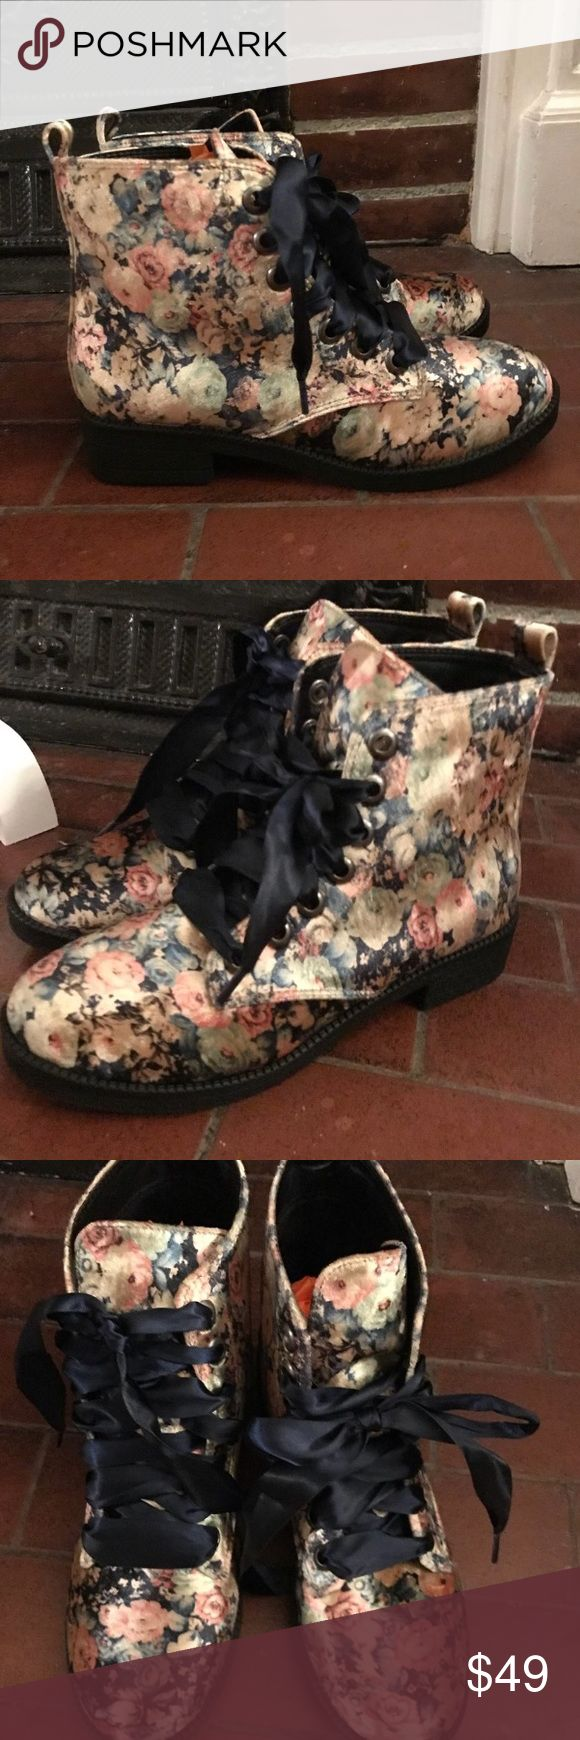 Velvet Floral Booties with Navy Ribbon Laces Sz 7 Vintage inspired floral velvet booties with navy ribbon shoe laces. These are incredibly feminine and perfect for cold weather! These are straight out of a storybook!! Modcloth Shoes